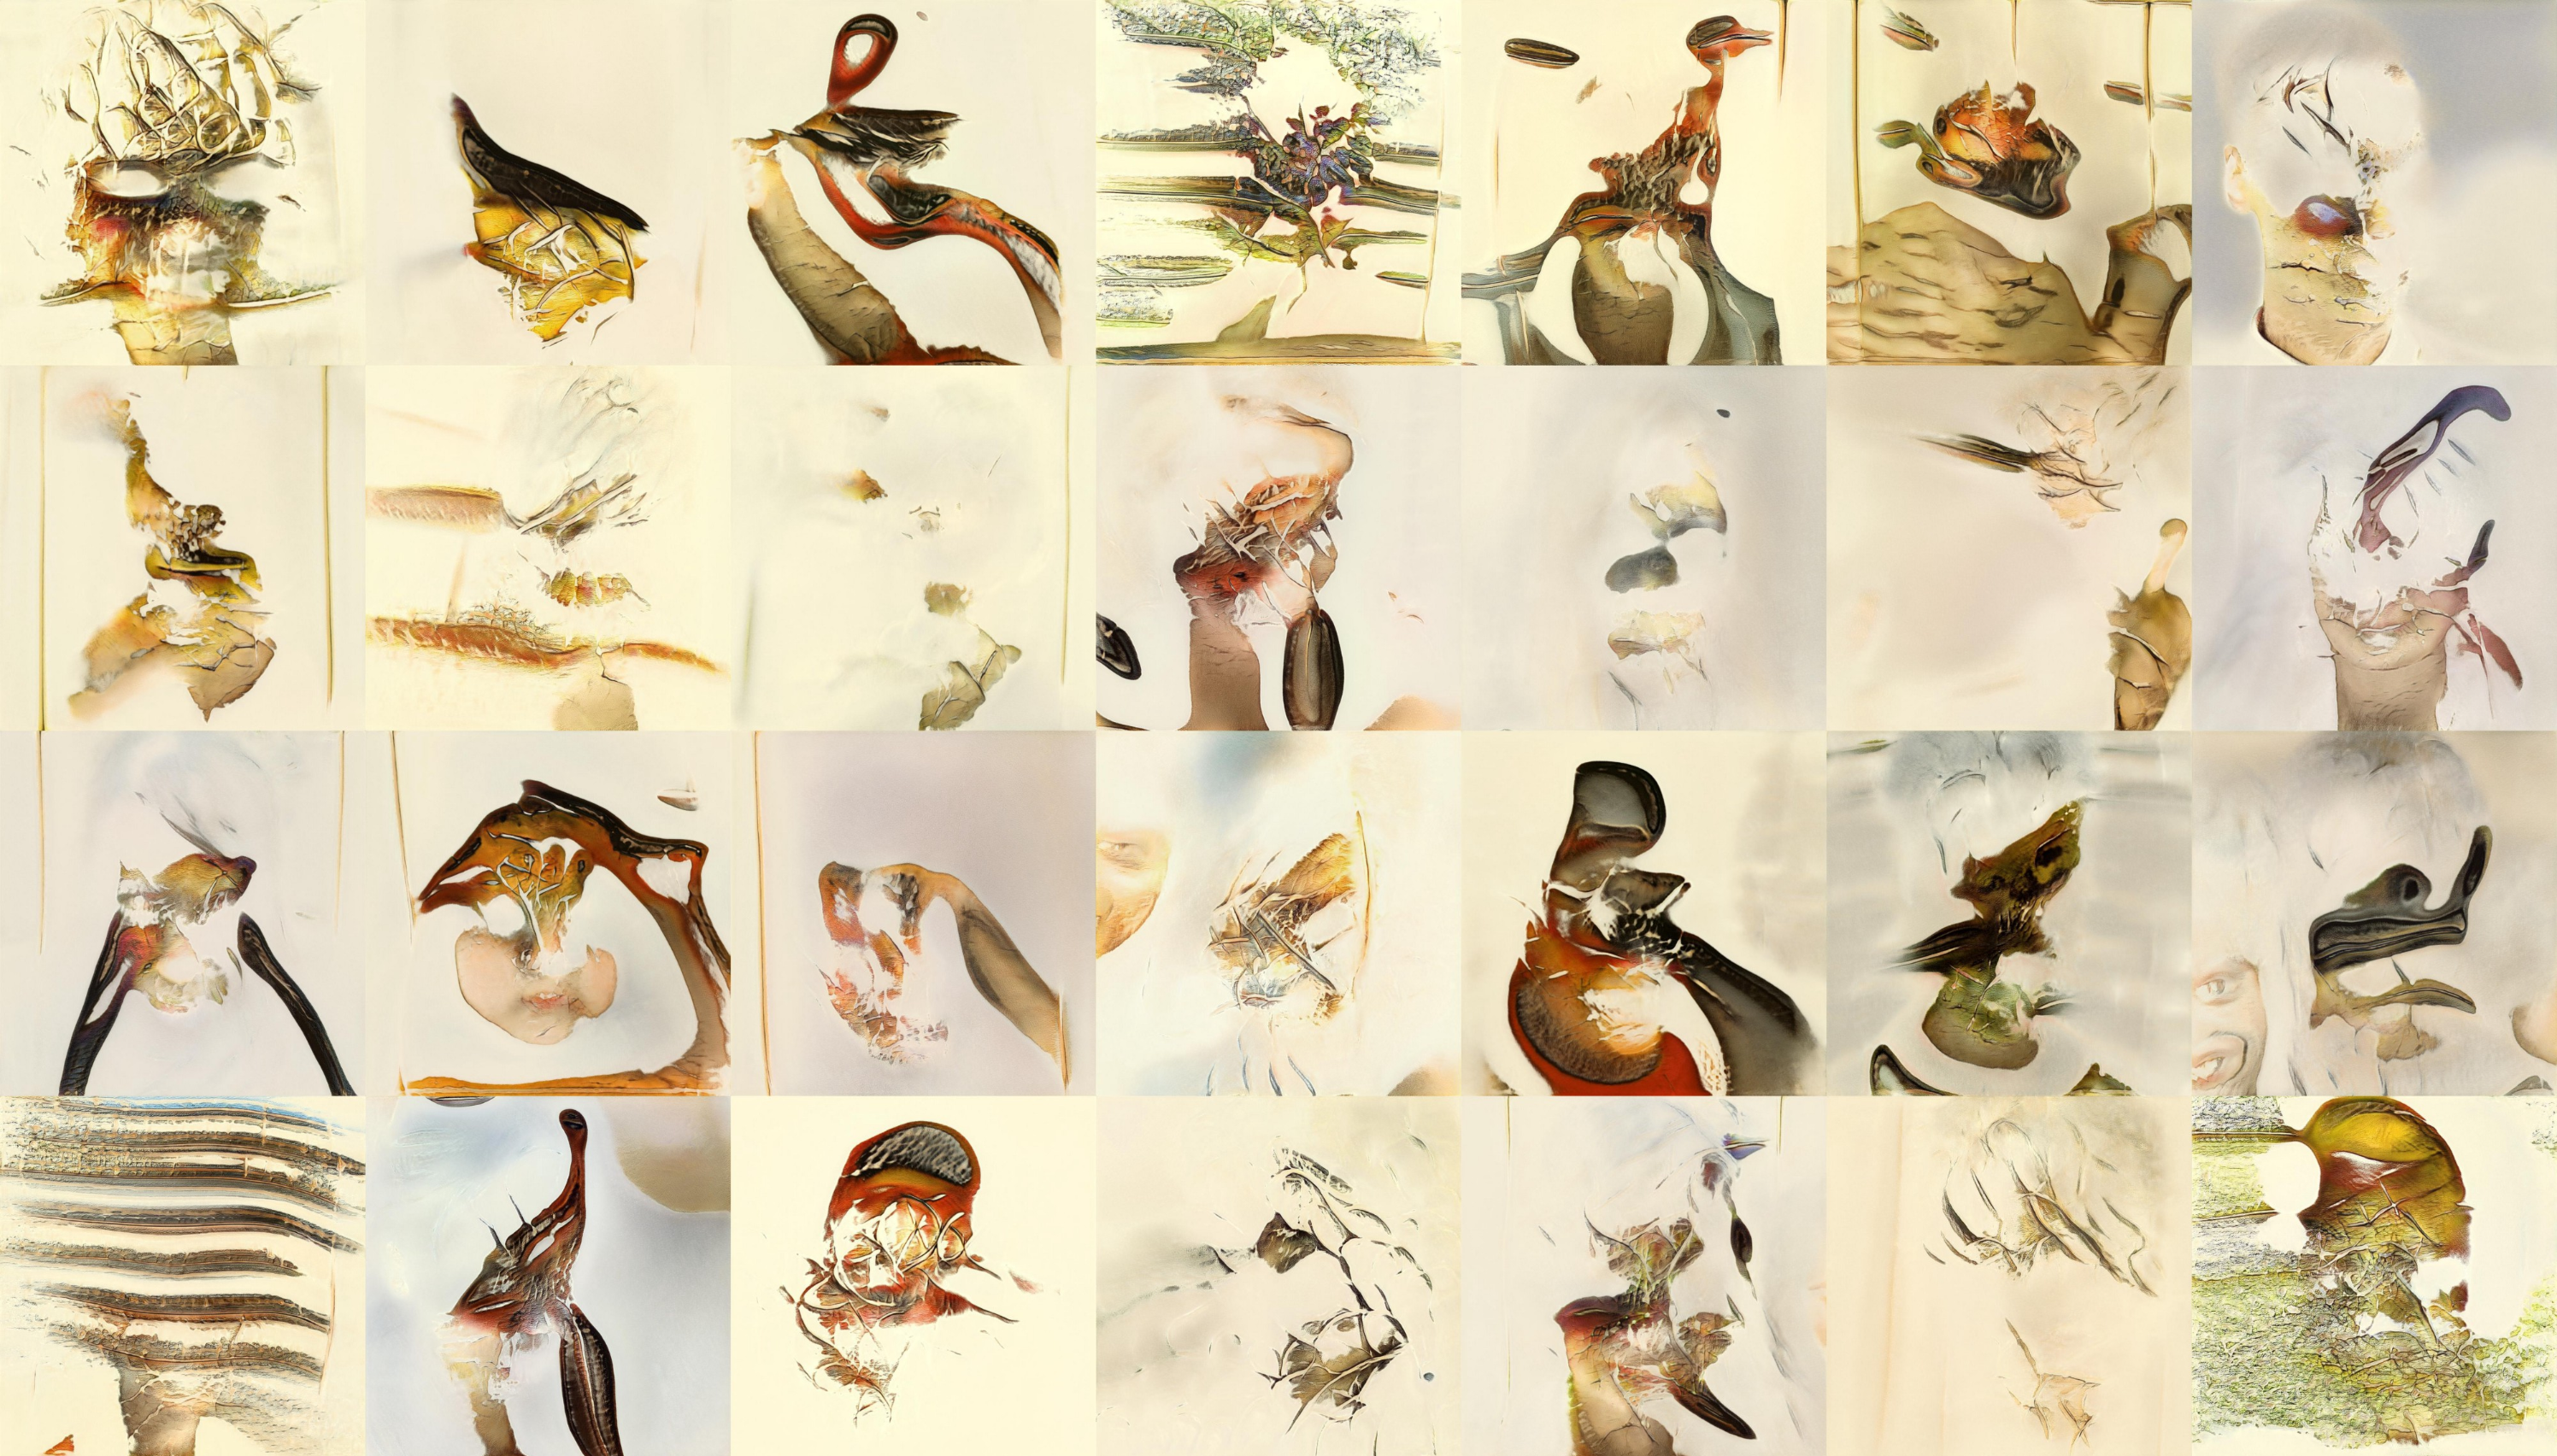 The same contact sheet style 28 images. You can now see almost no face-like features at all. At this stage the images look very abstract. You can see the background colour is a pale beige like on a lot of the illustrations of birds. You can see the model learning that the birds are generally in the centre of the image. But we have abstract blobby shapes in the foreground at the moment, rather than anything that looks like birds. The colours of these blobs are starting to look bird-like, though.